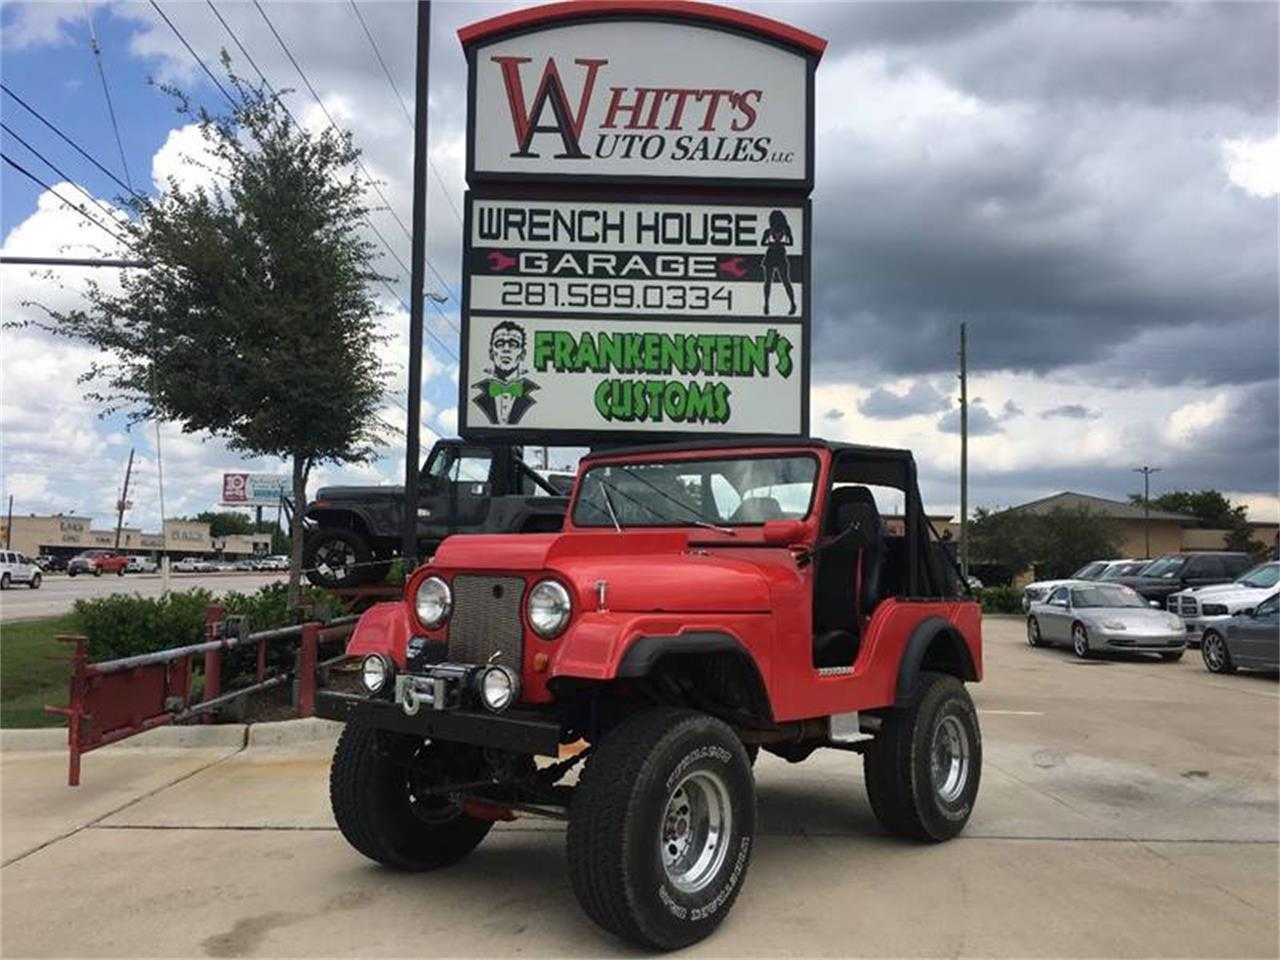 for sale 1966 jeep wrangler in houston, texas cars - houston, tx at geebo